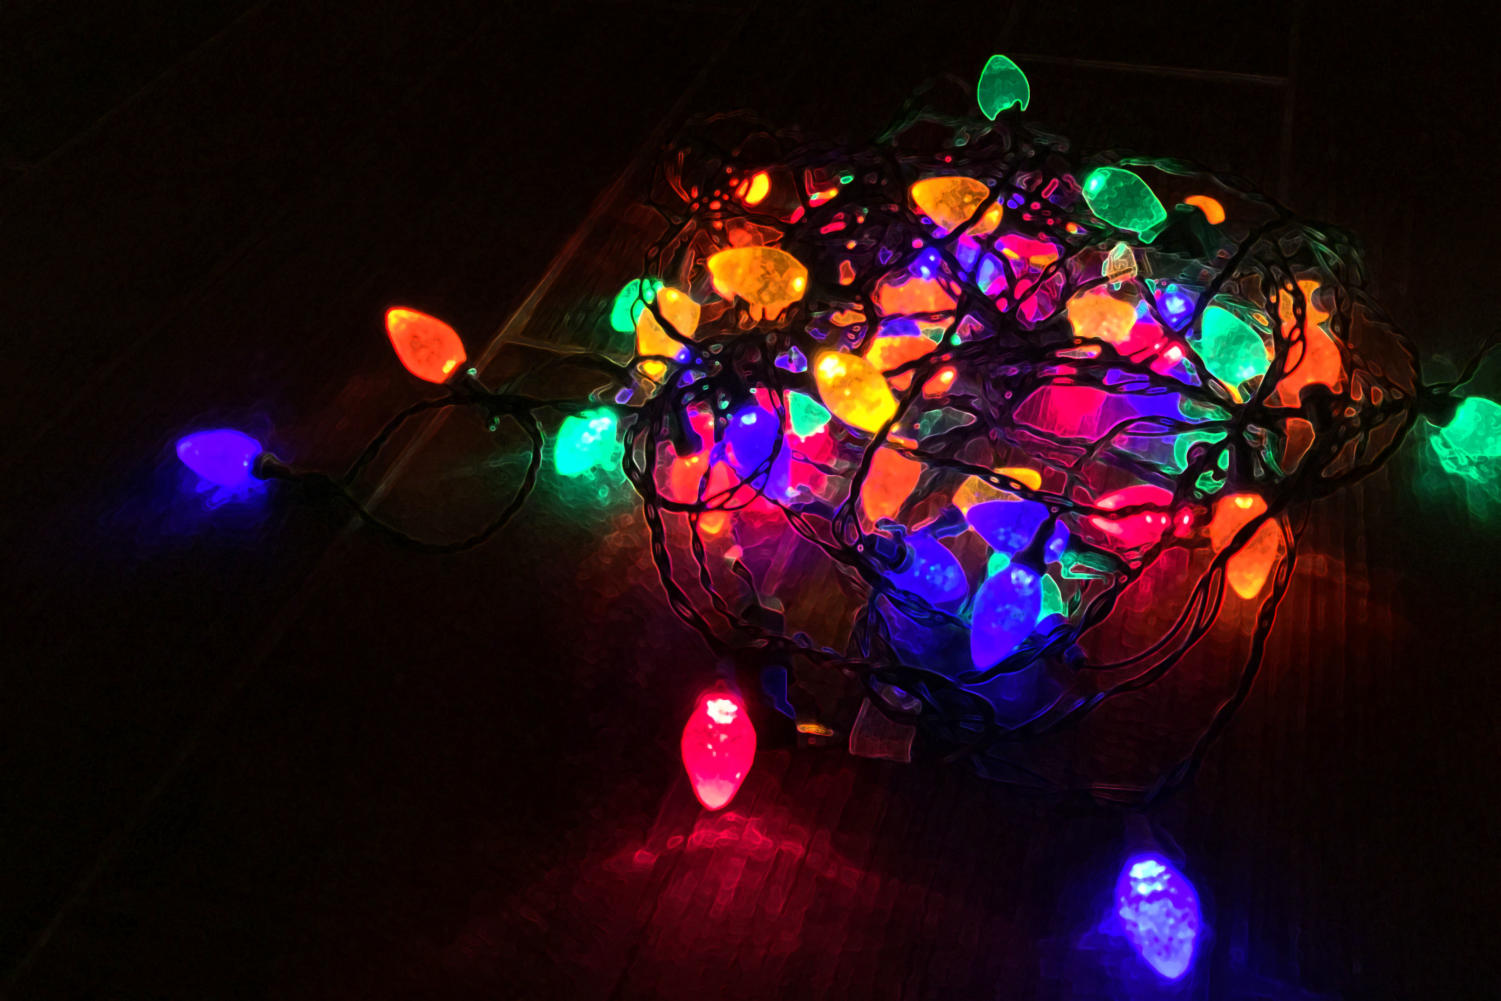 Christmas lights reminiscent of 'Stranger Things' season one.